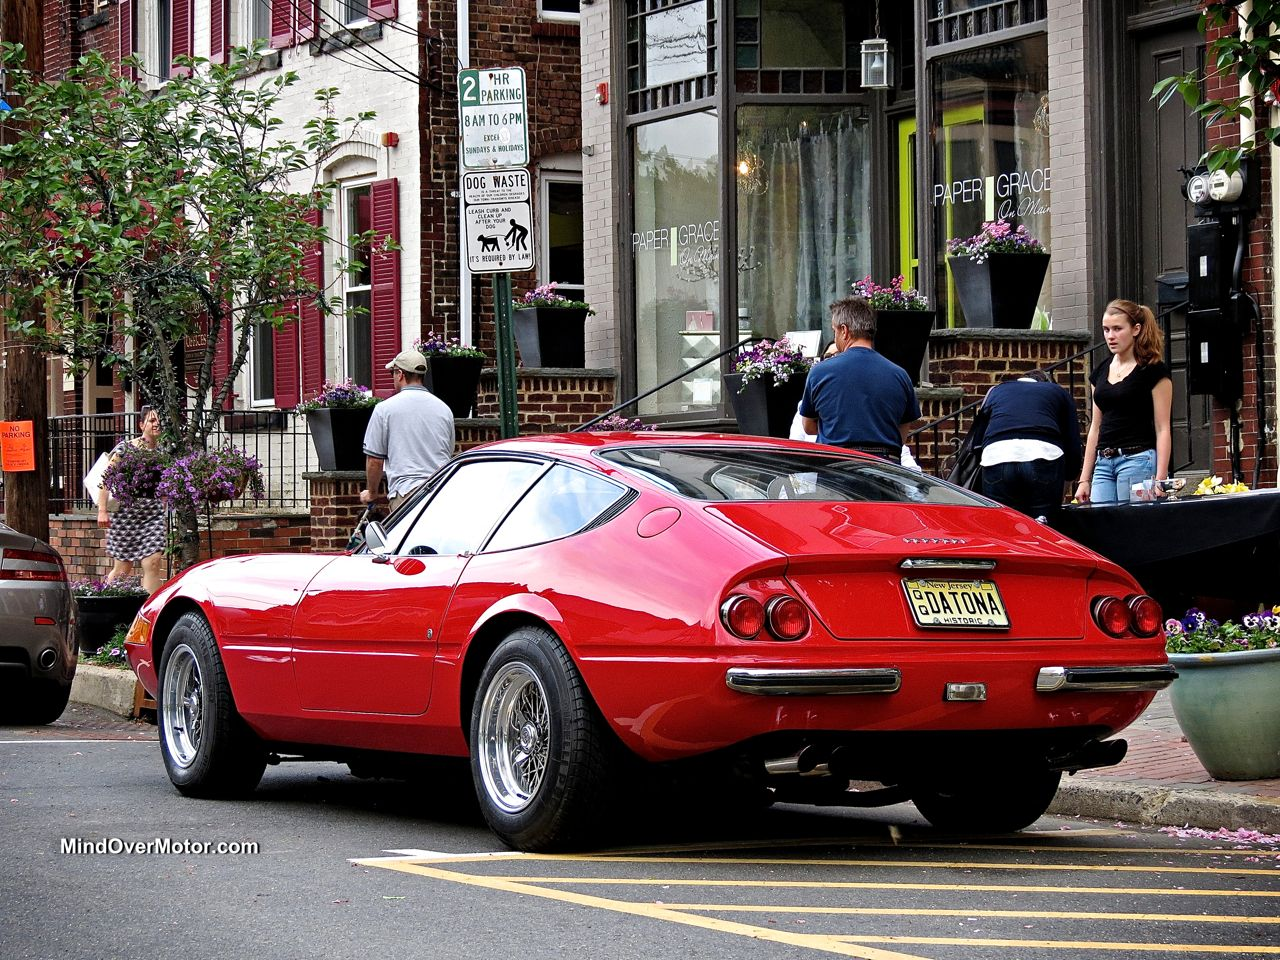 Ferrari 365 Daytona rear view